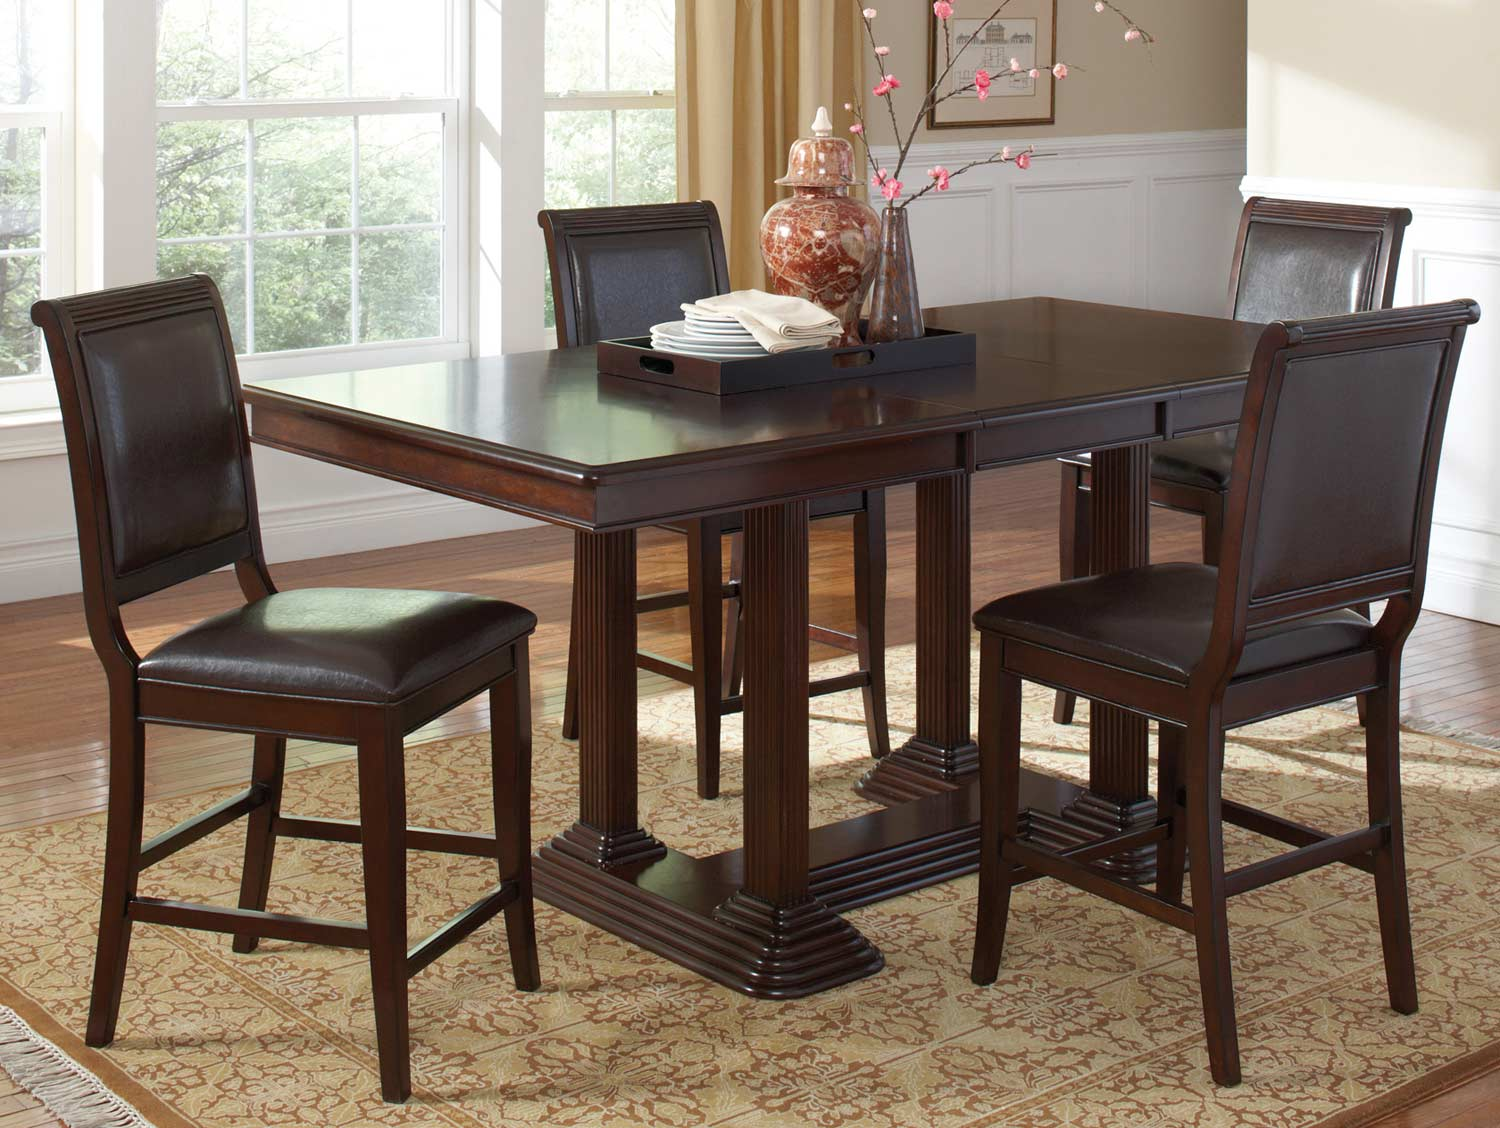 Coaster Sullivan Counter Height Dining Set - Brown Cherry